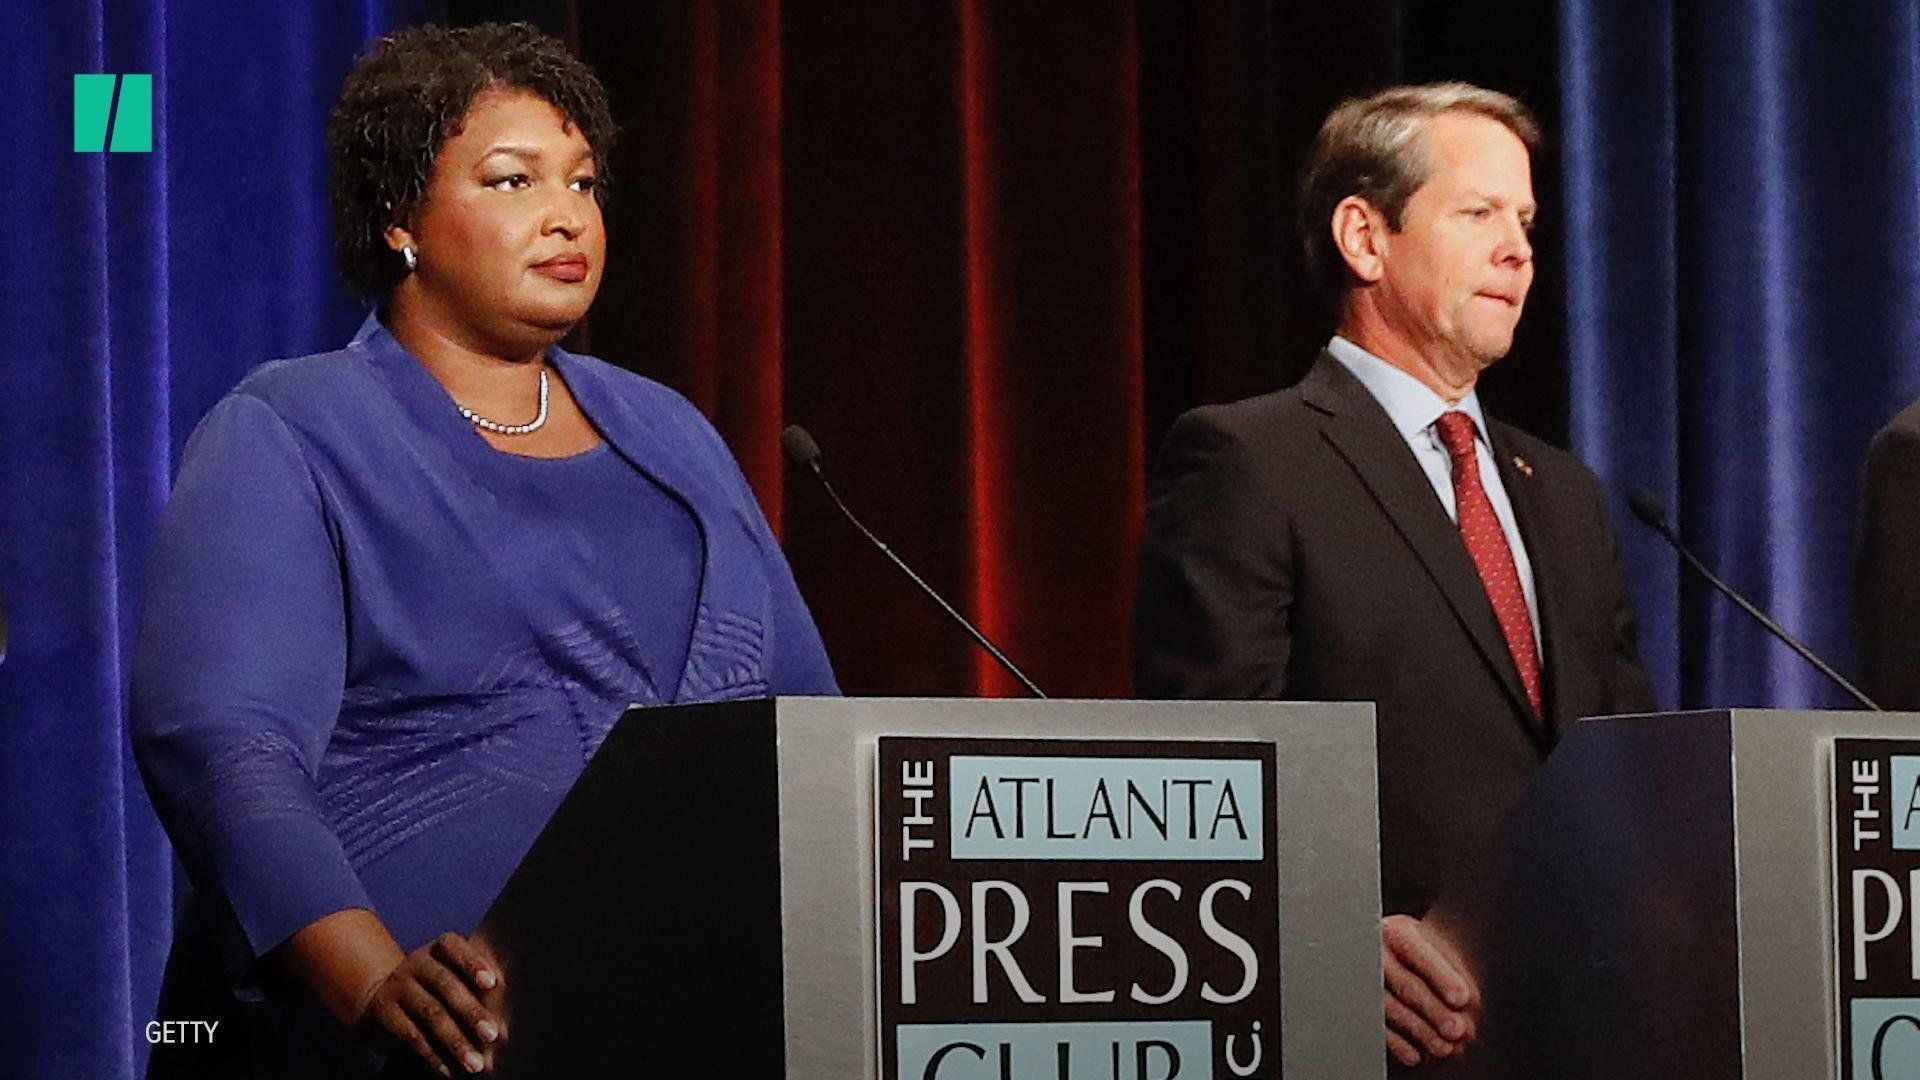 Brian Kemp, criticized for overseeing Georgia election, runs into trouble casting vote